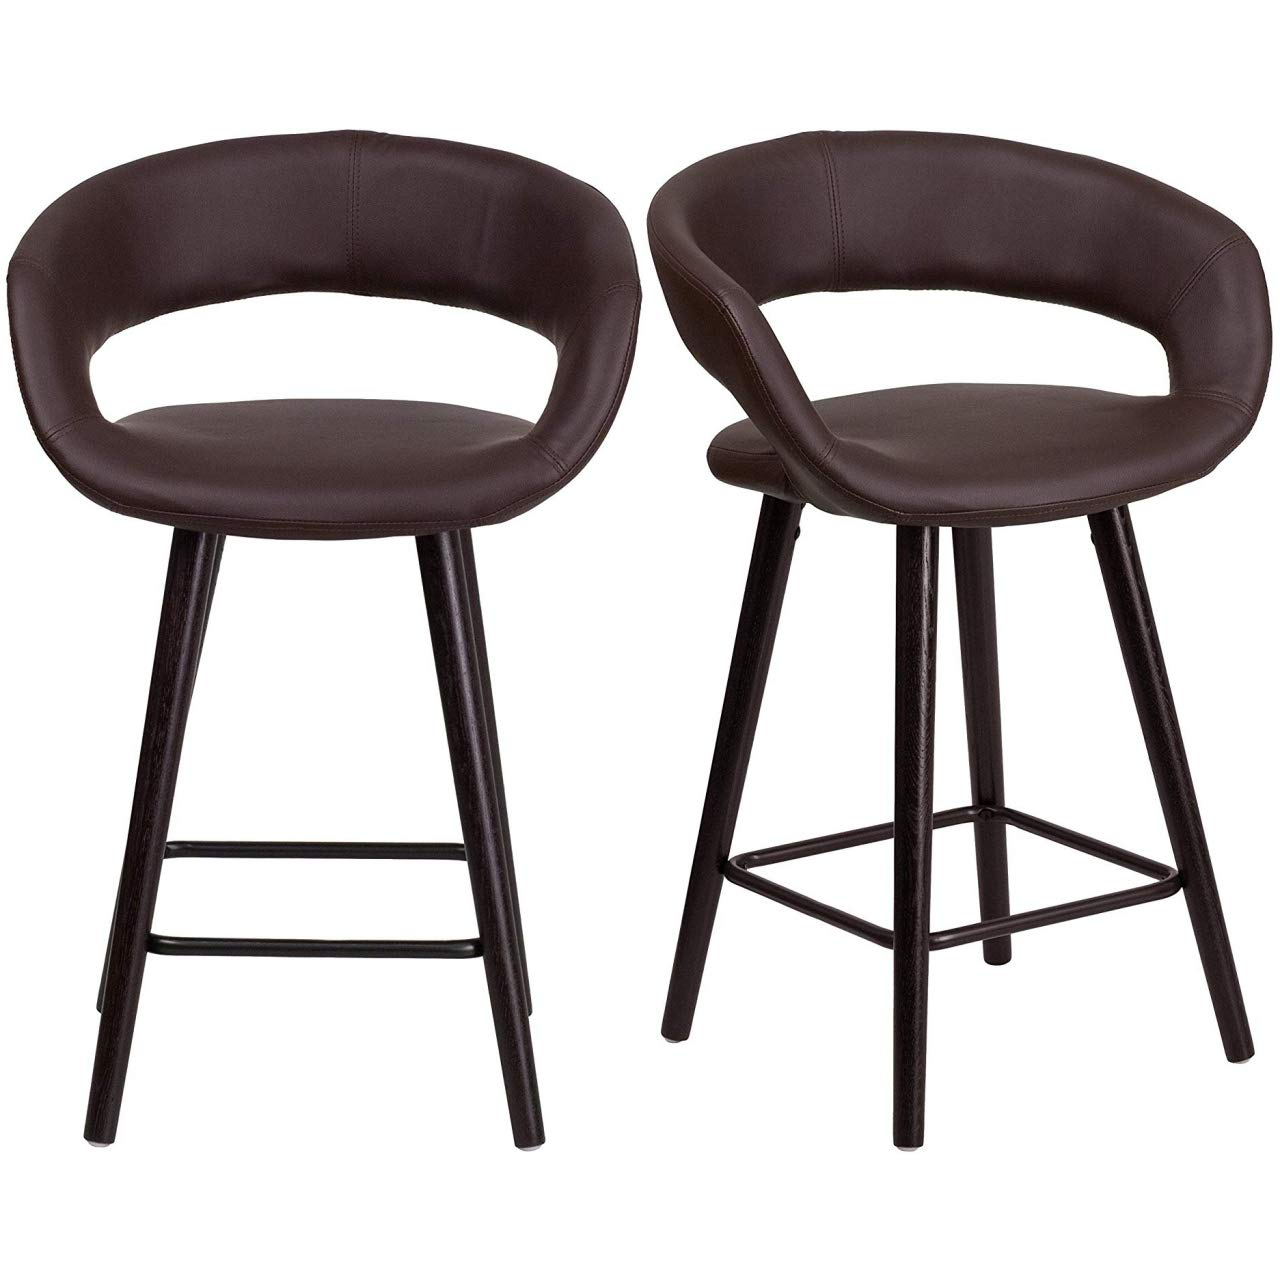 """KLS14 Set of 2 Contemporary 23.75"""" Counter Height Bar Stools Rounded Low Back Design Commercial Dining Chairs Home Office Furniture, Brown Vinyl/2364"""